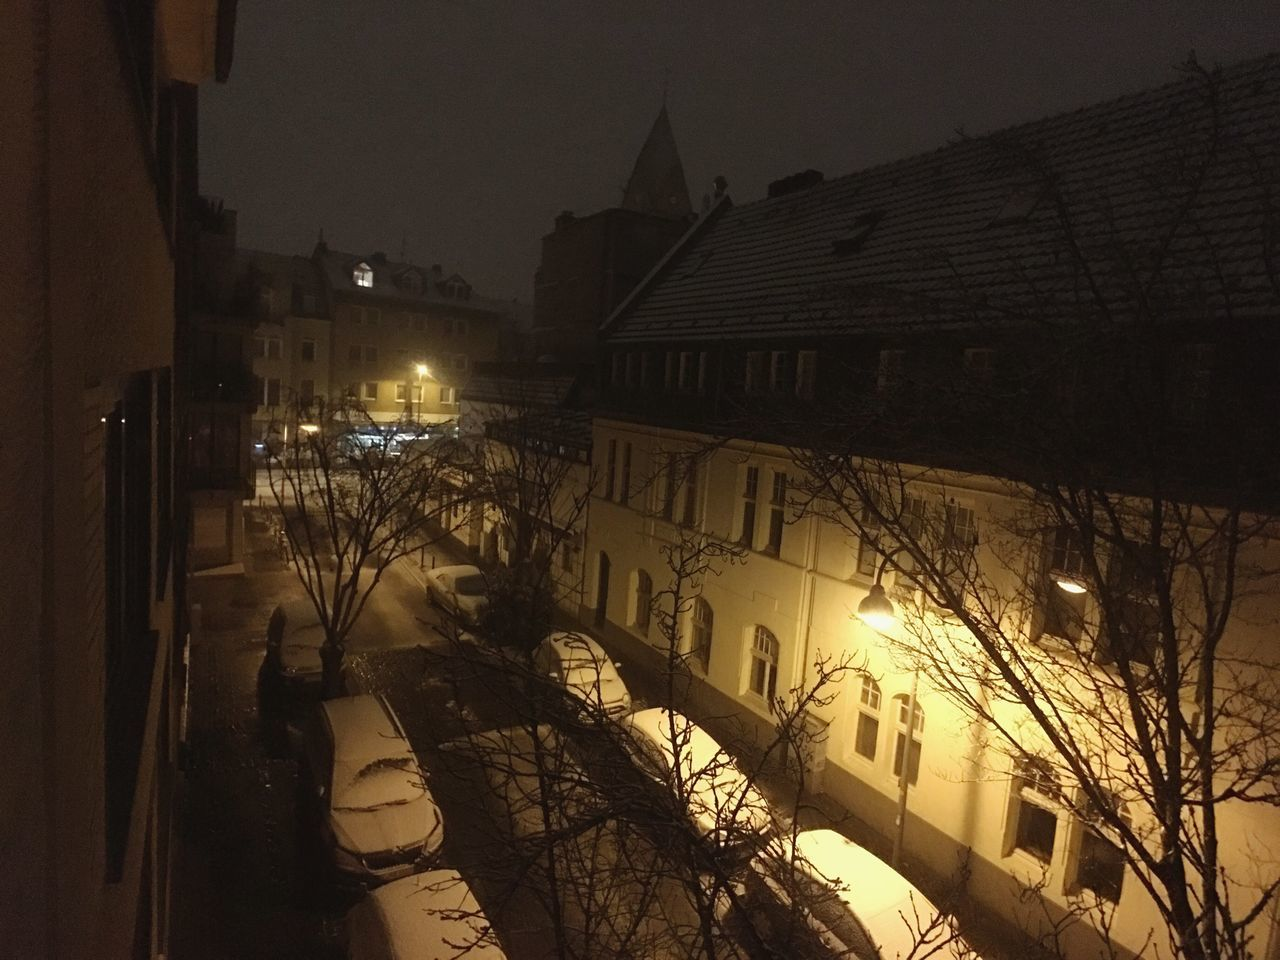 Architecture Building Exterior Built Structure Illuminated Night City Outdoors No People Streetphotography Street Germany Snow Winter Cold Temperature City Architecture